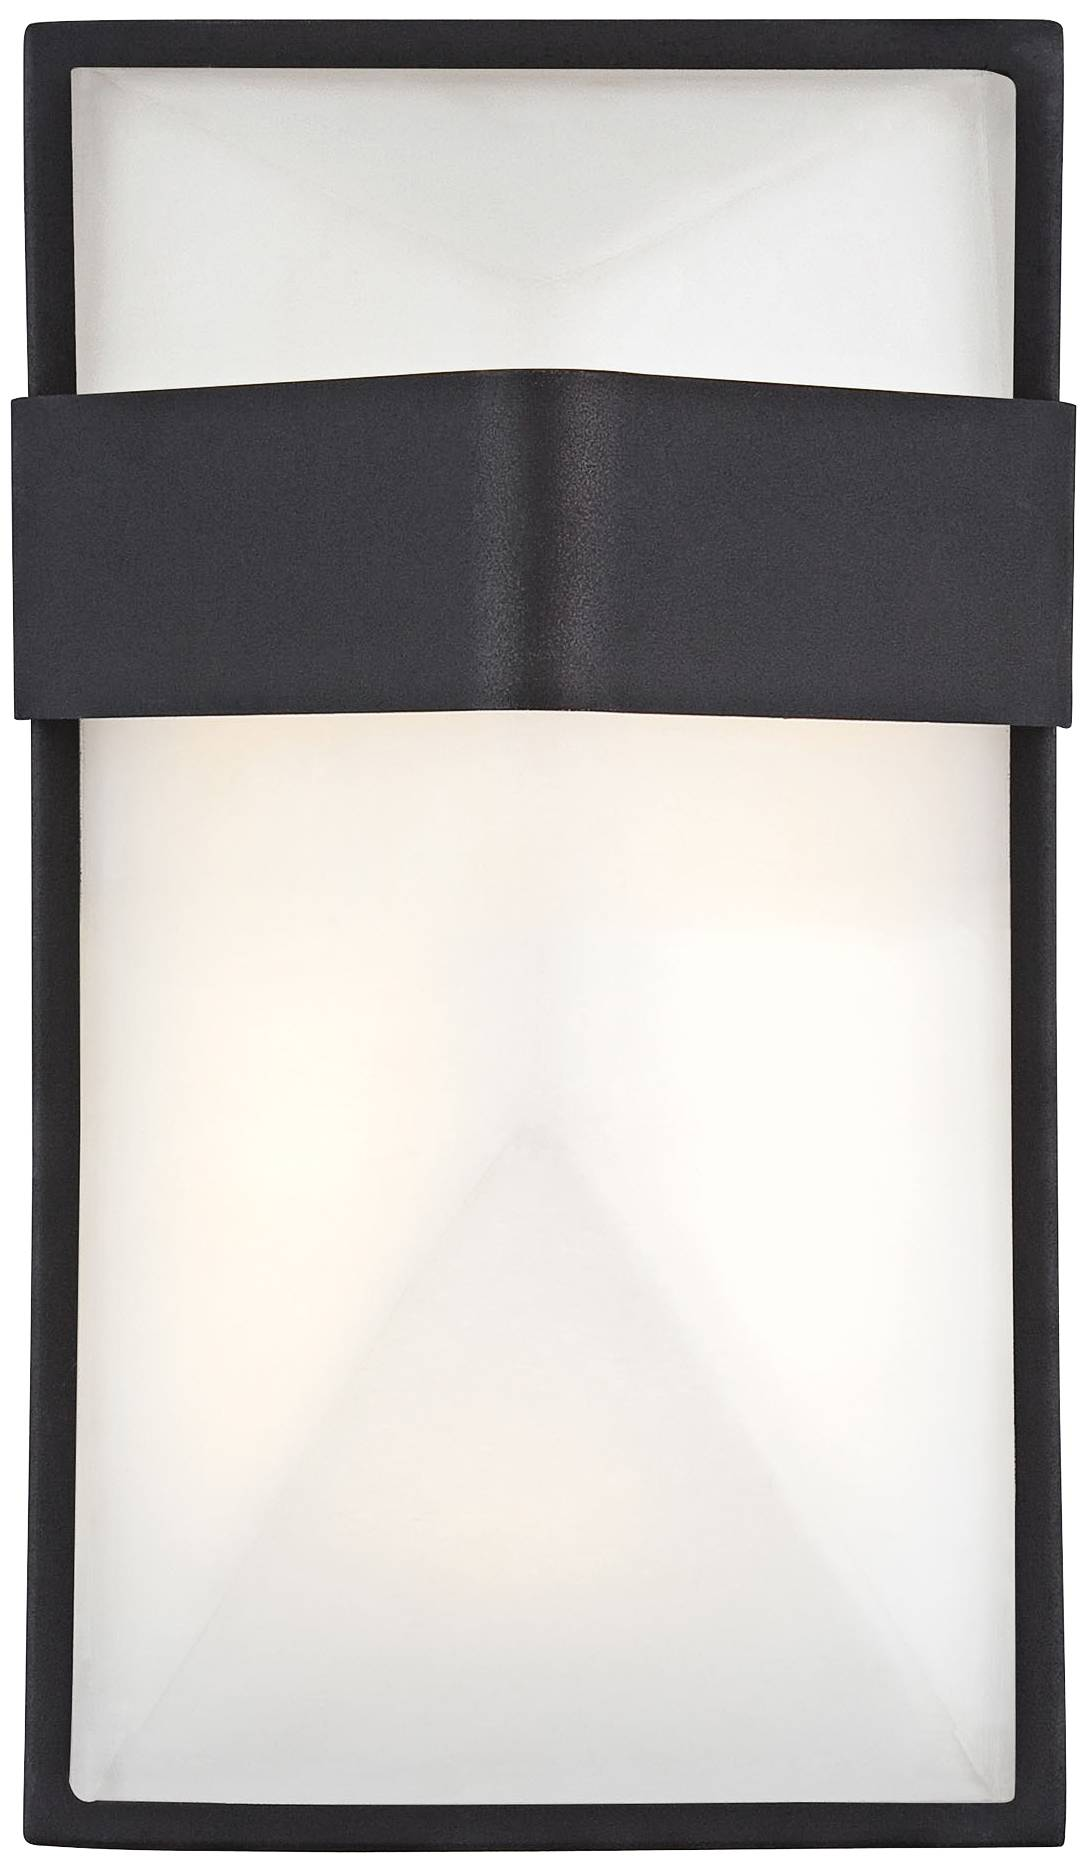 Possini Euro Design Black Outdoor Led Up And Down Wall